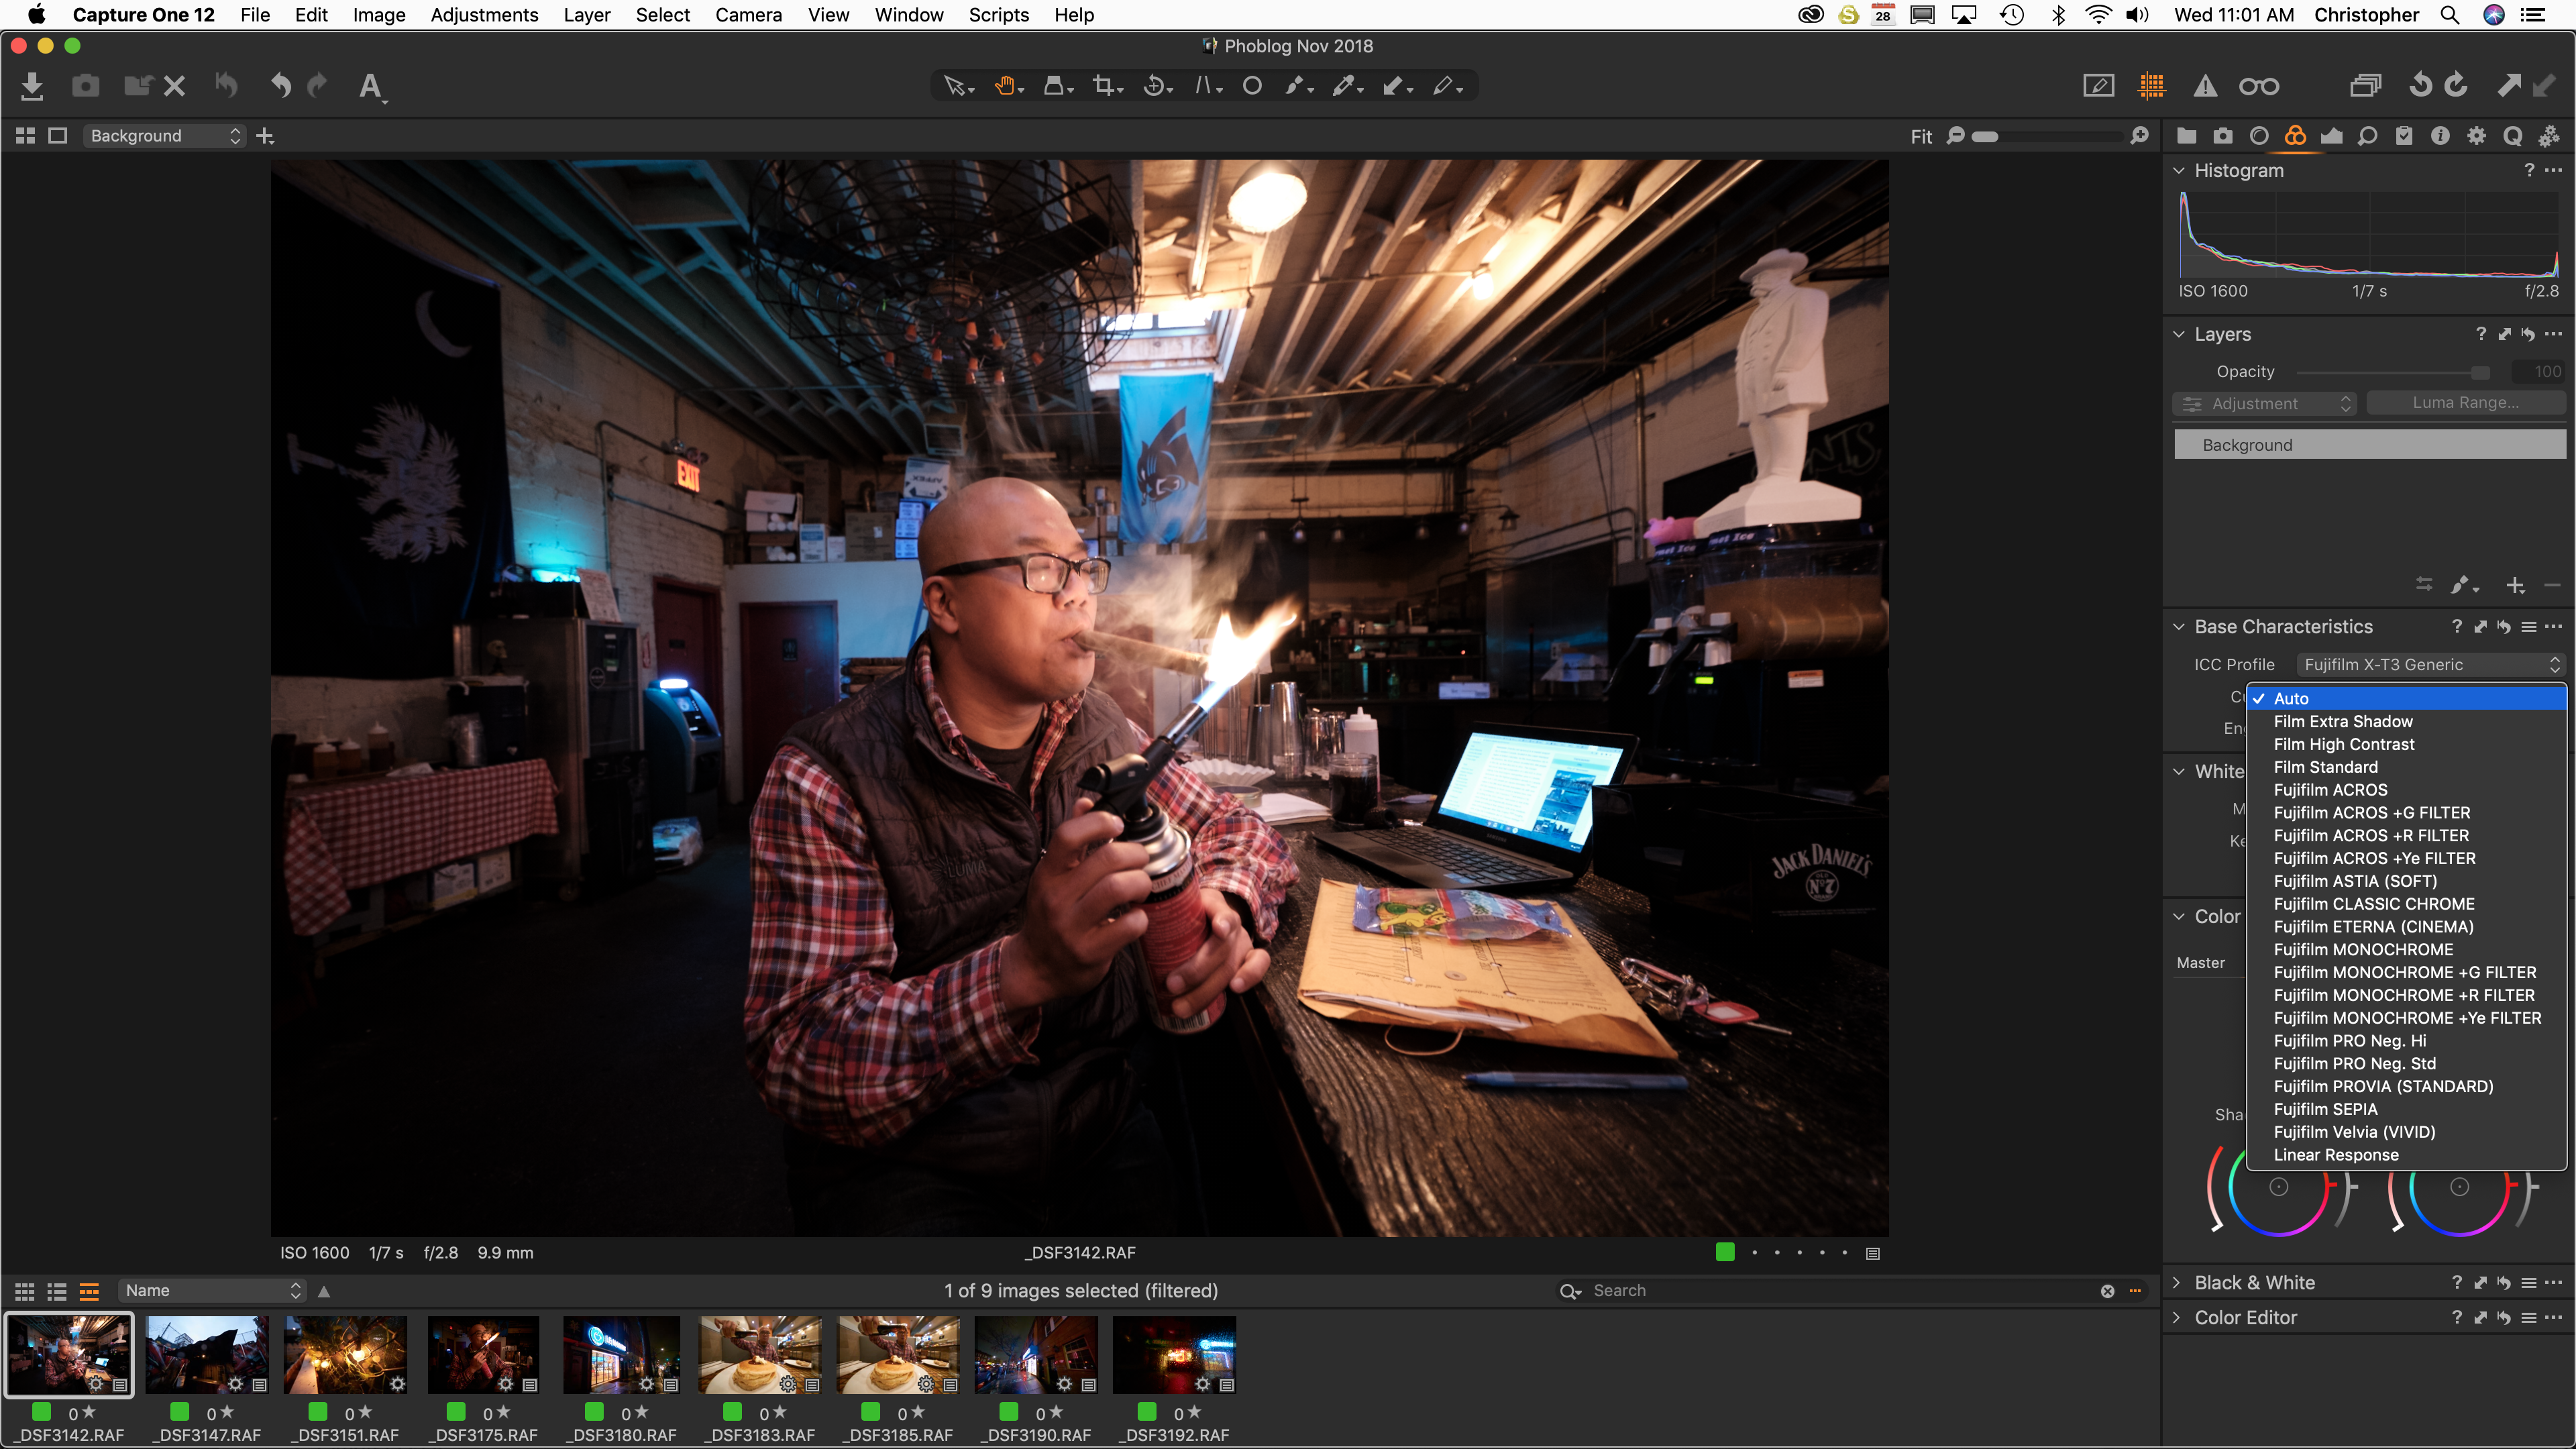 Capture One 12 Users Treated to a Free Editors Choice Style Pack